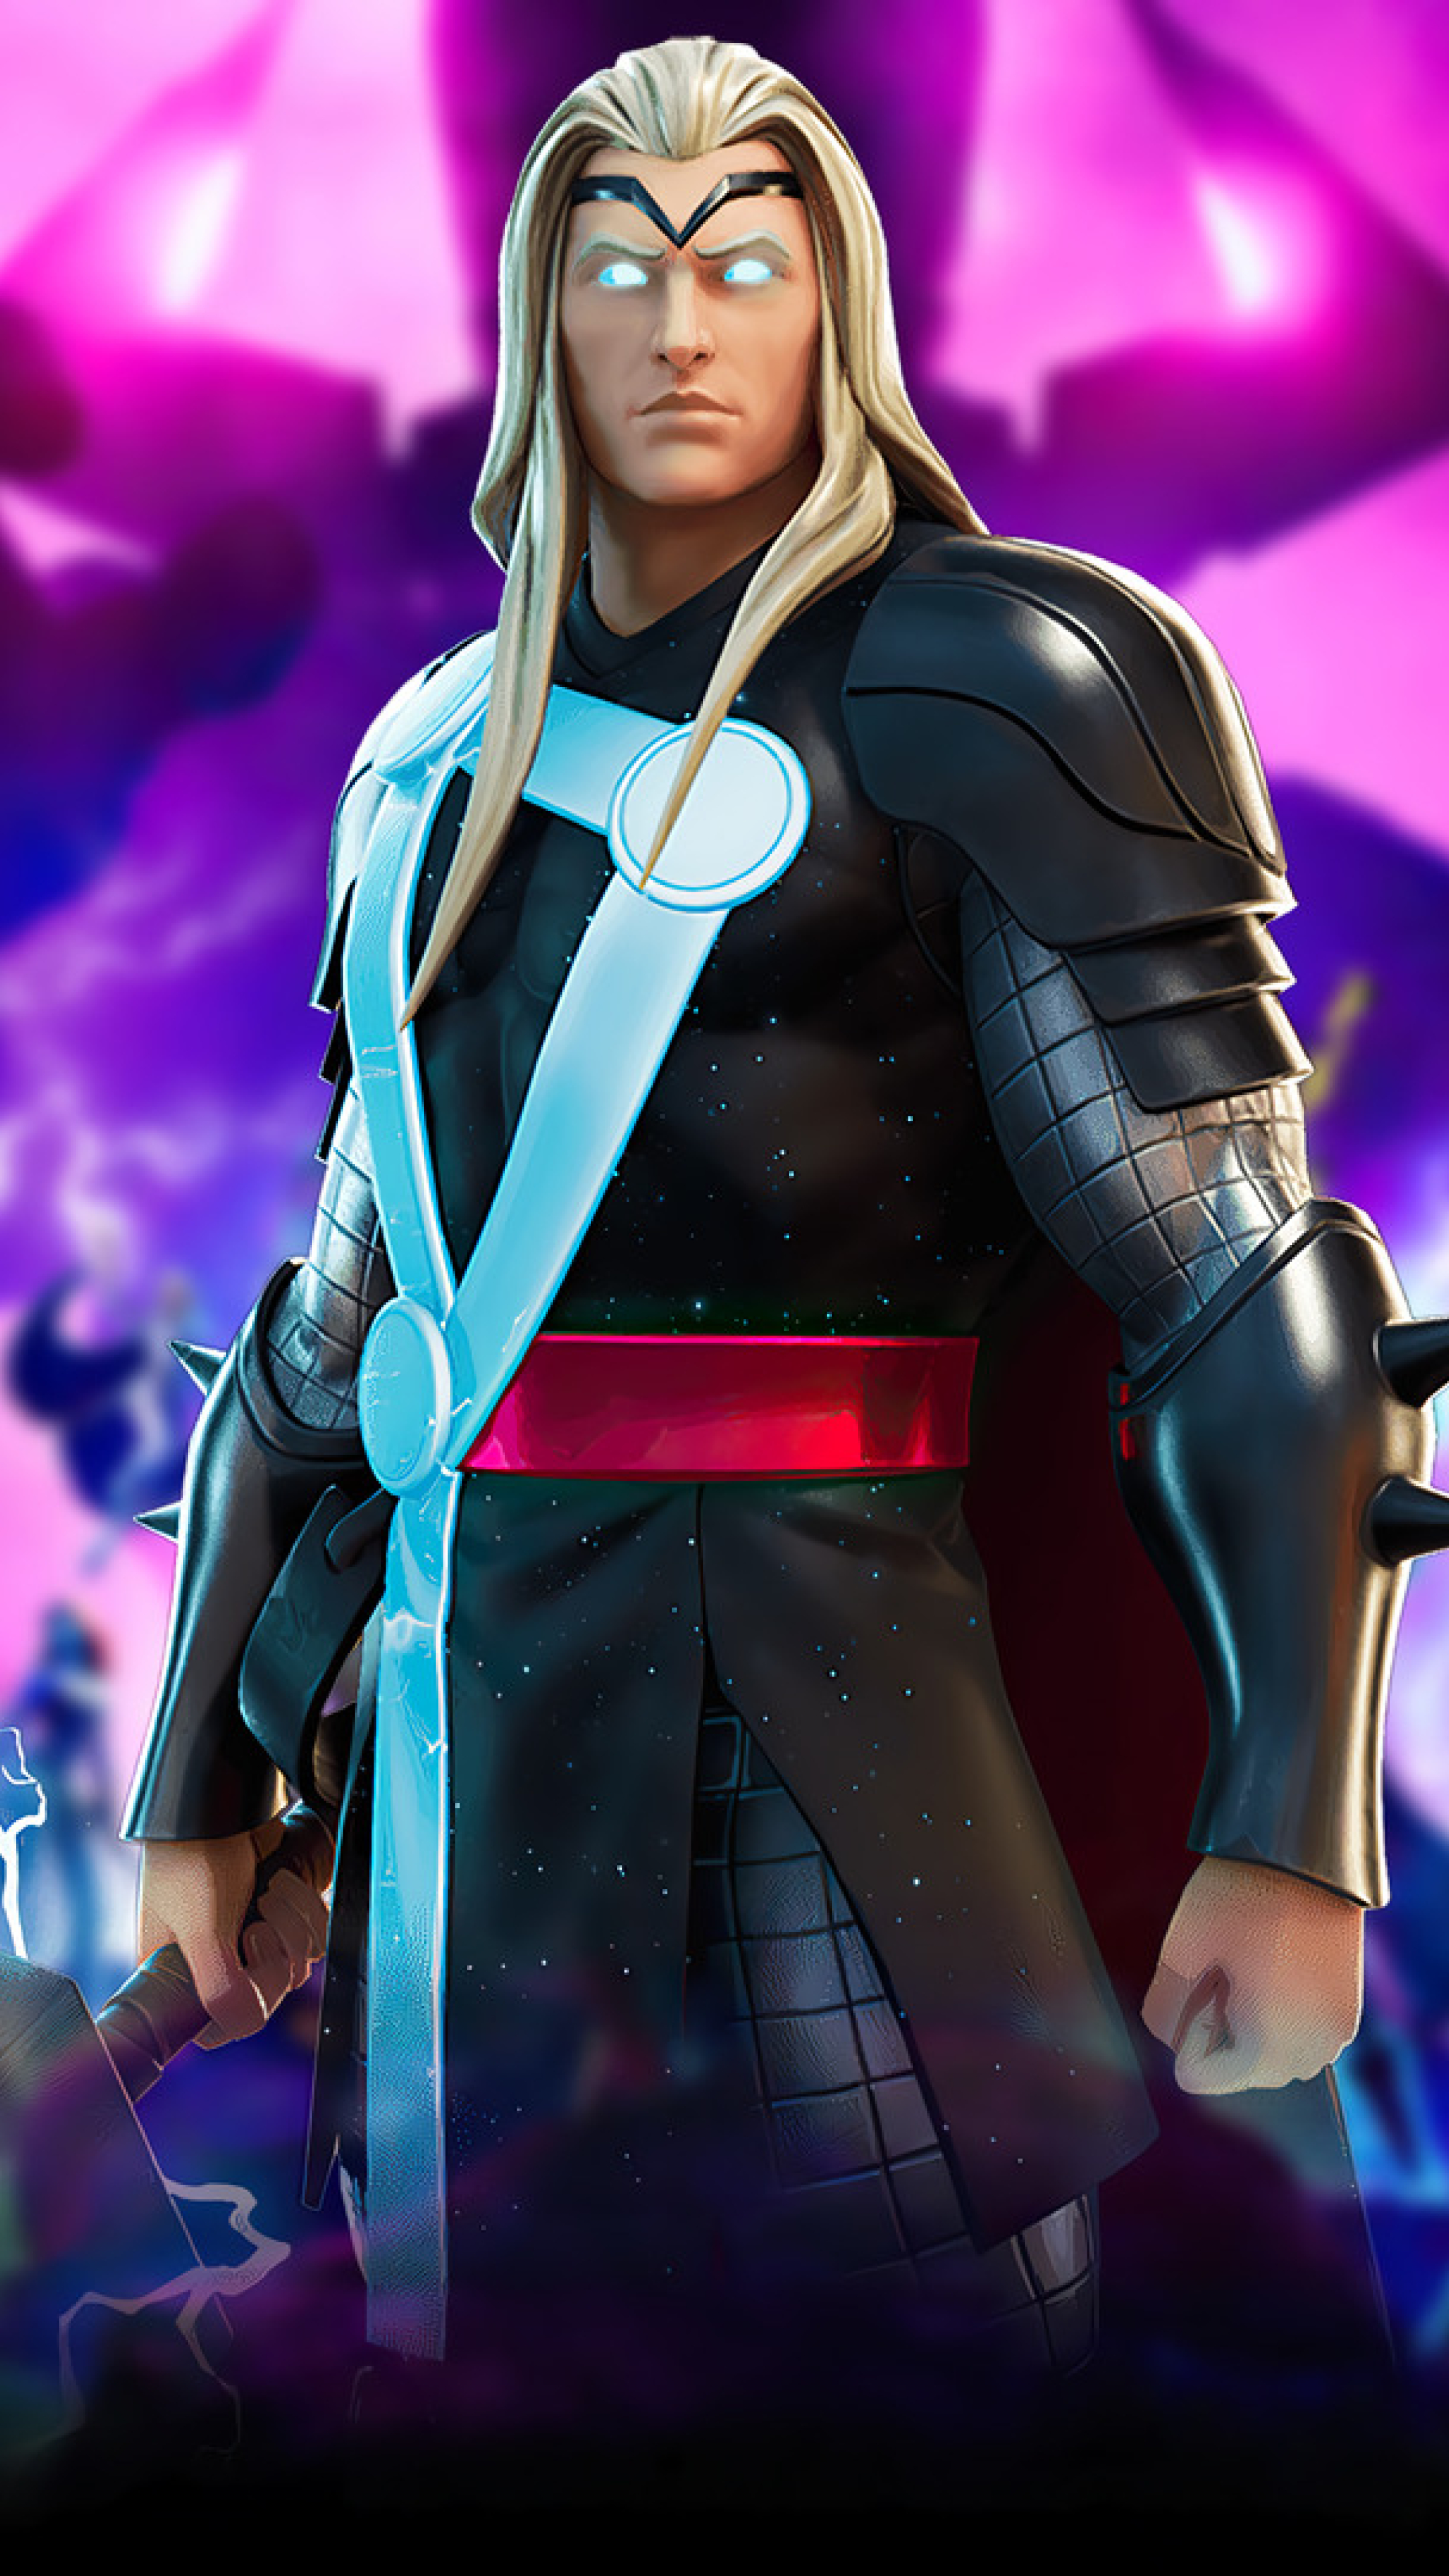 Marvel Thor Fortnite Wallpaper in 2160x3840 Resolution